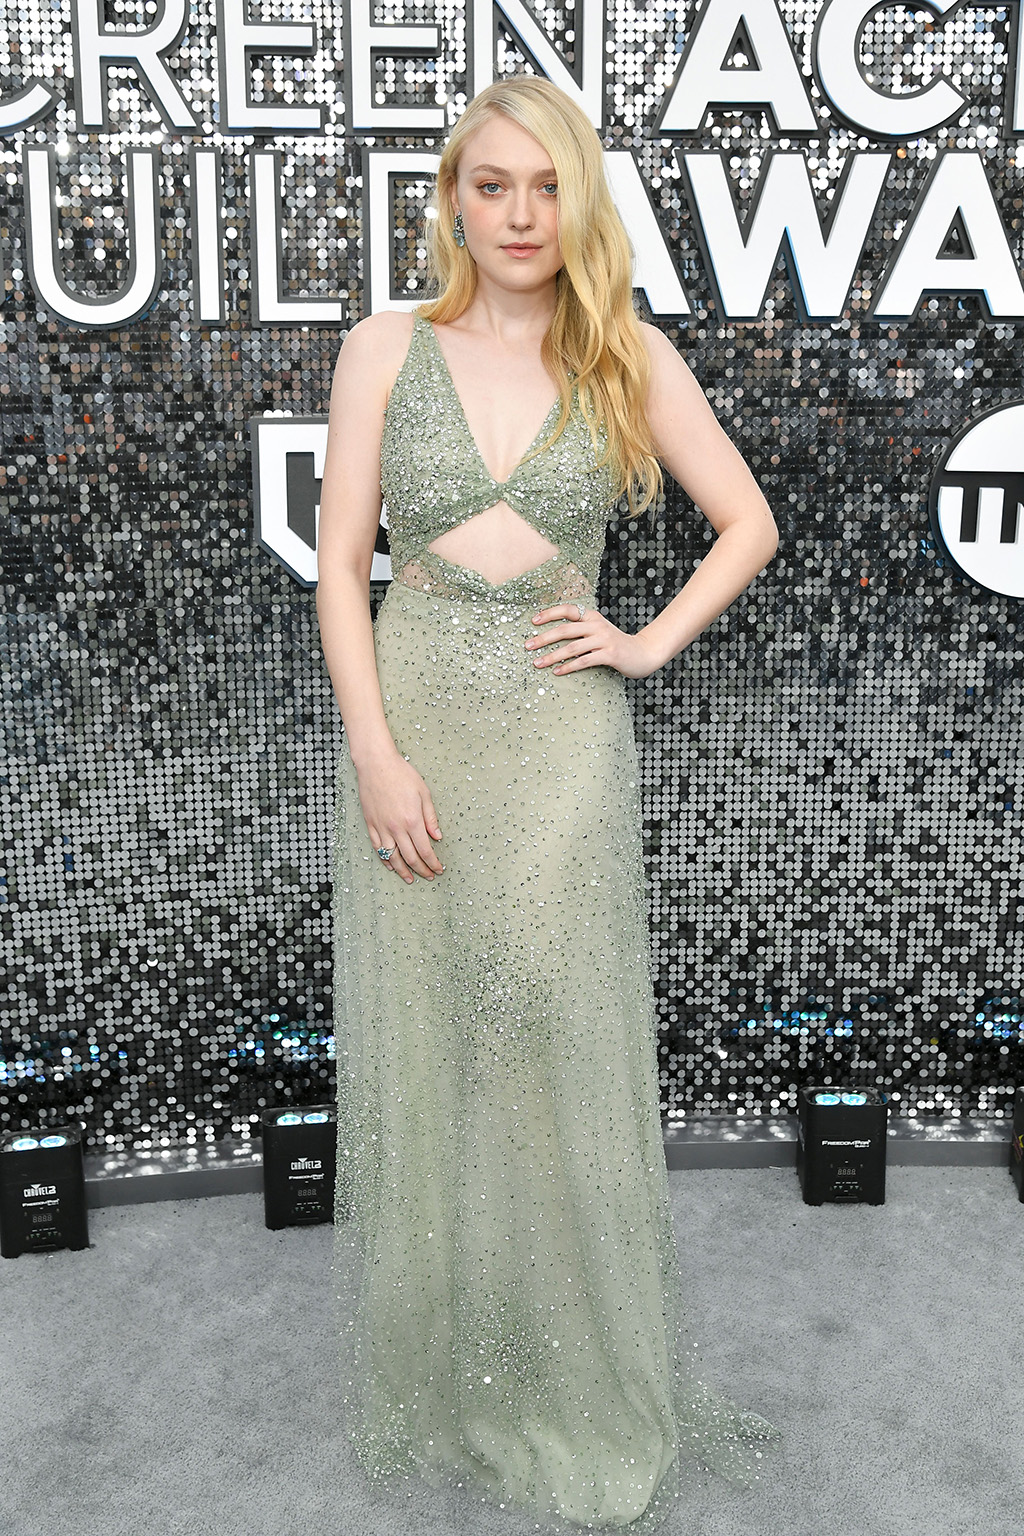 Dakota Fanning Sparkles in Mint Green at 2020 SAG Awards